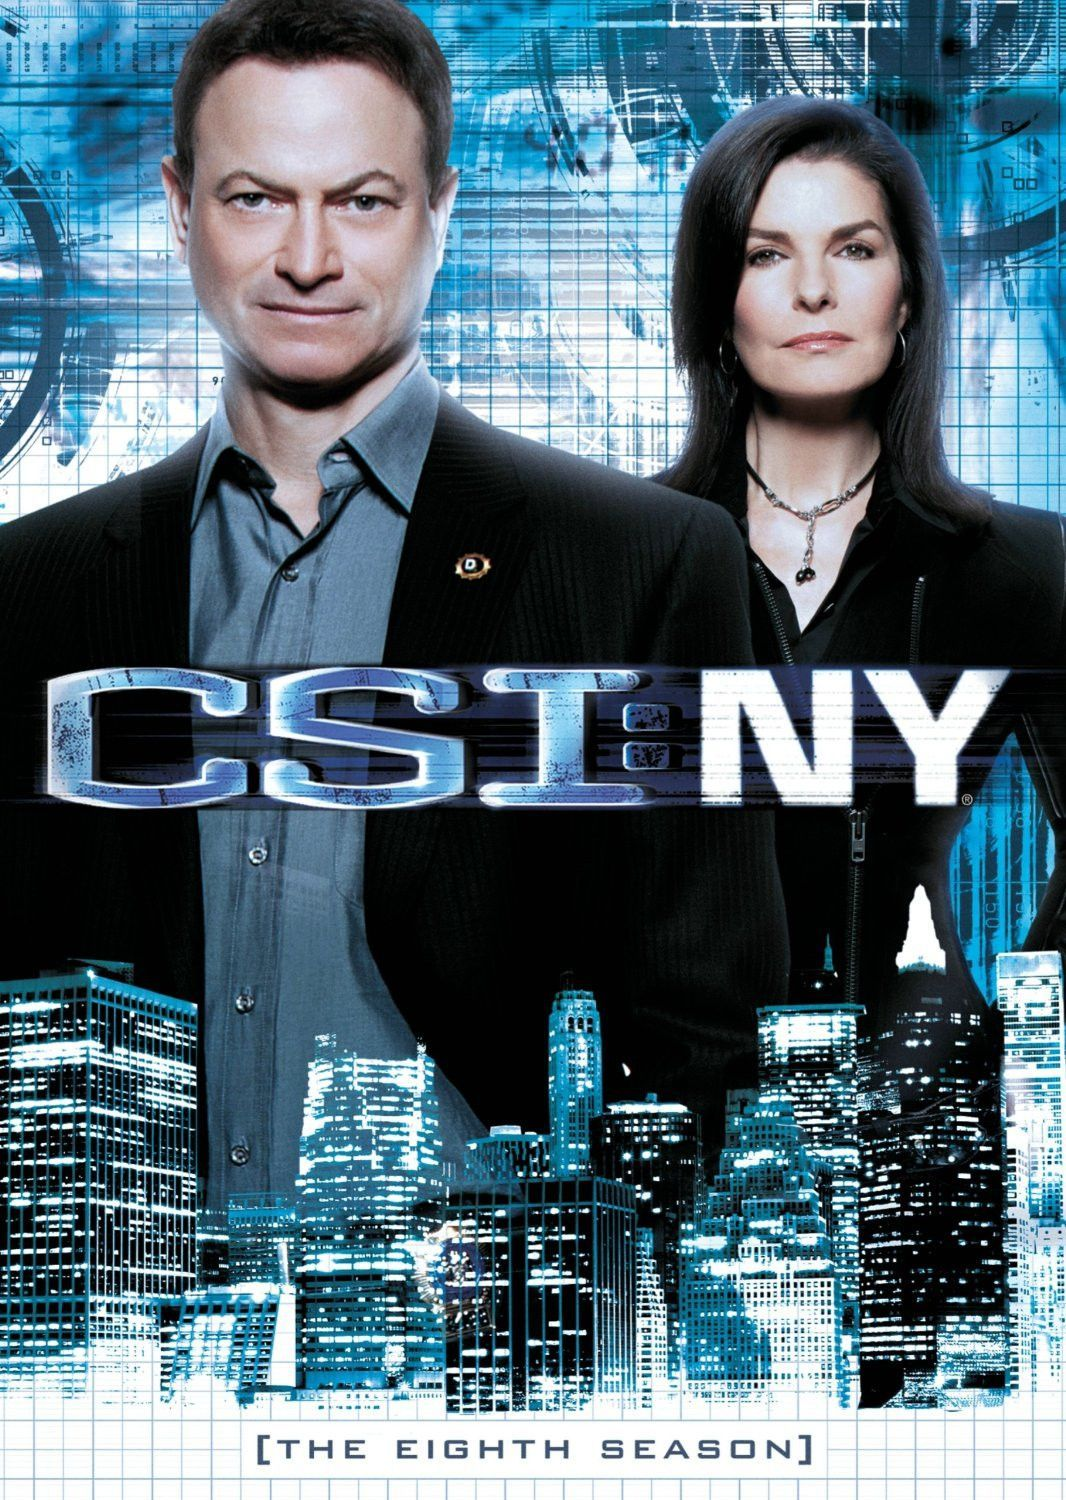 In the eighth season of CSI NY, the team is rocked by a